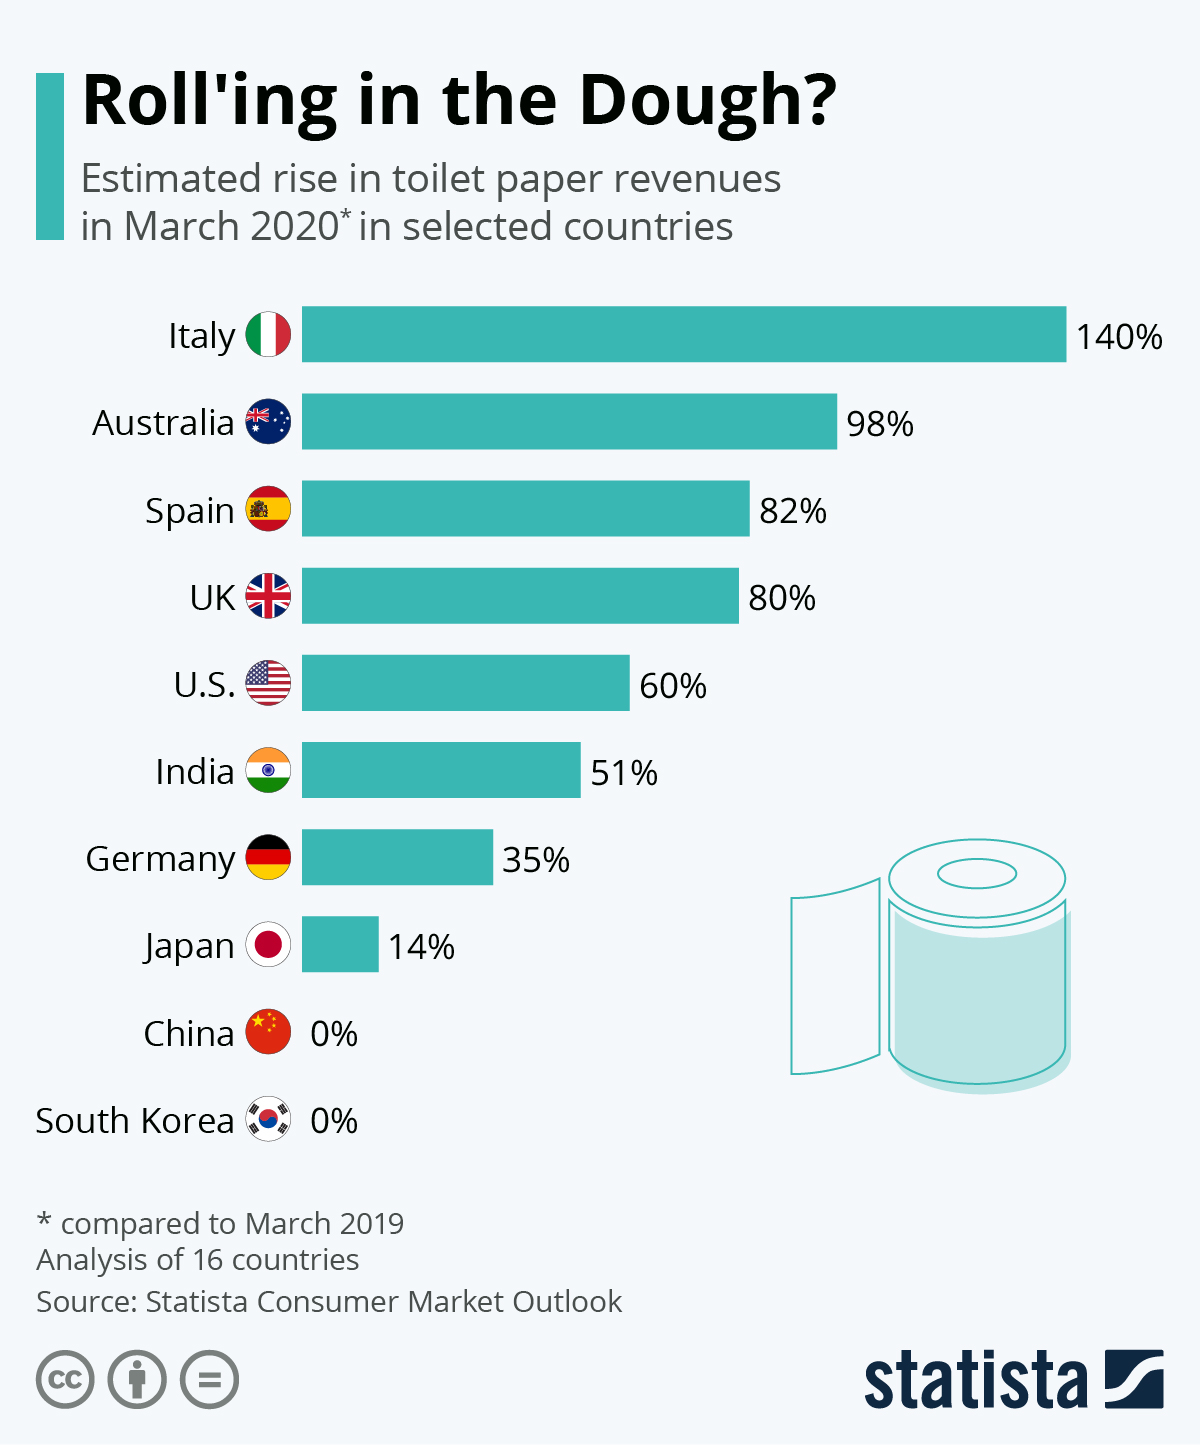 'Roll'ing in the Dough?' Estimated rise in toilet paper revenues in March 2020* in selected countries. *compared to March 2019. Analysis of 16 countries. Teal horizontal bar chart lists data for 10 countries.